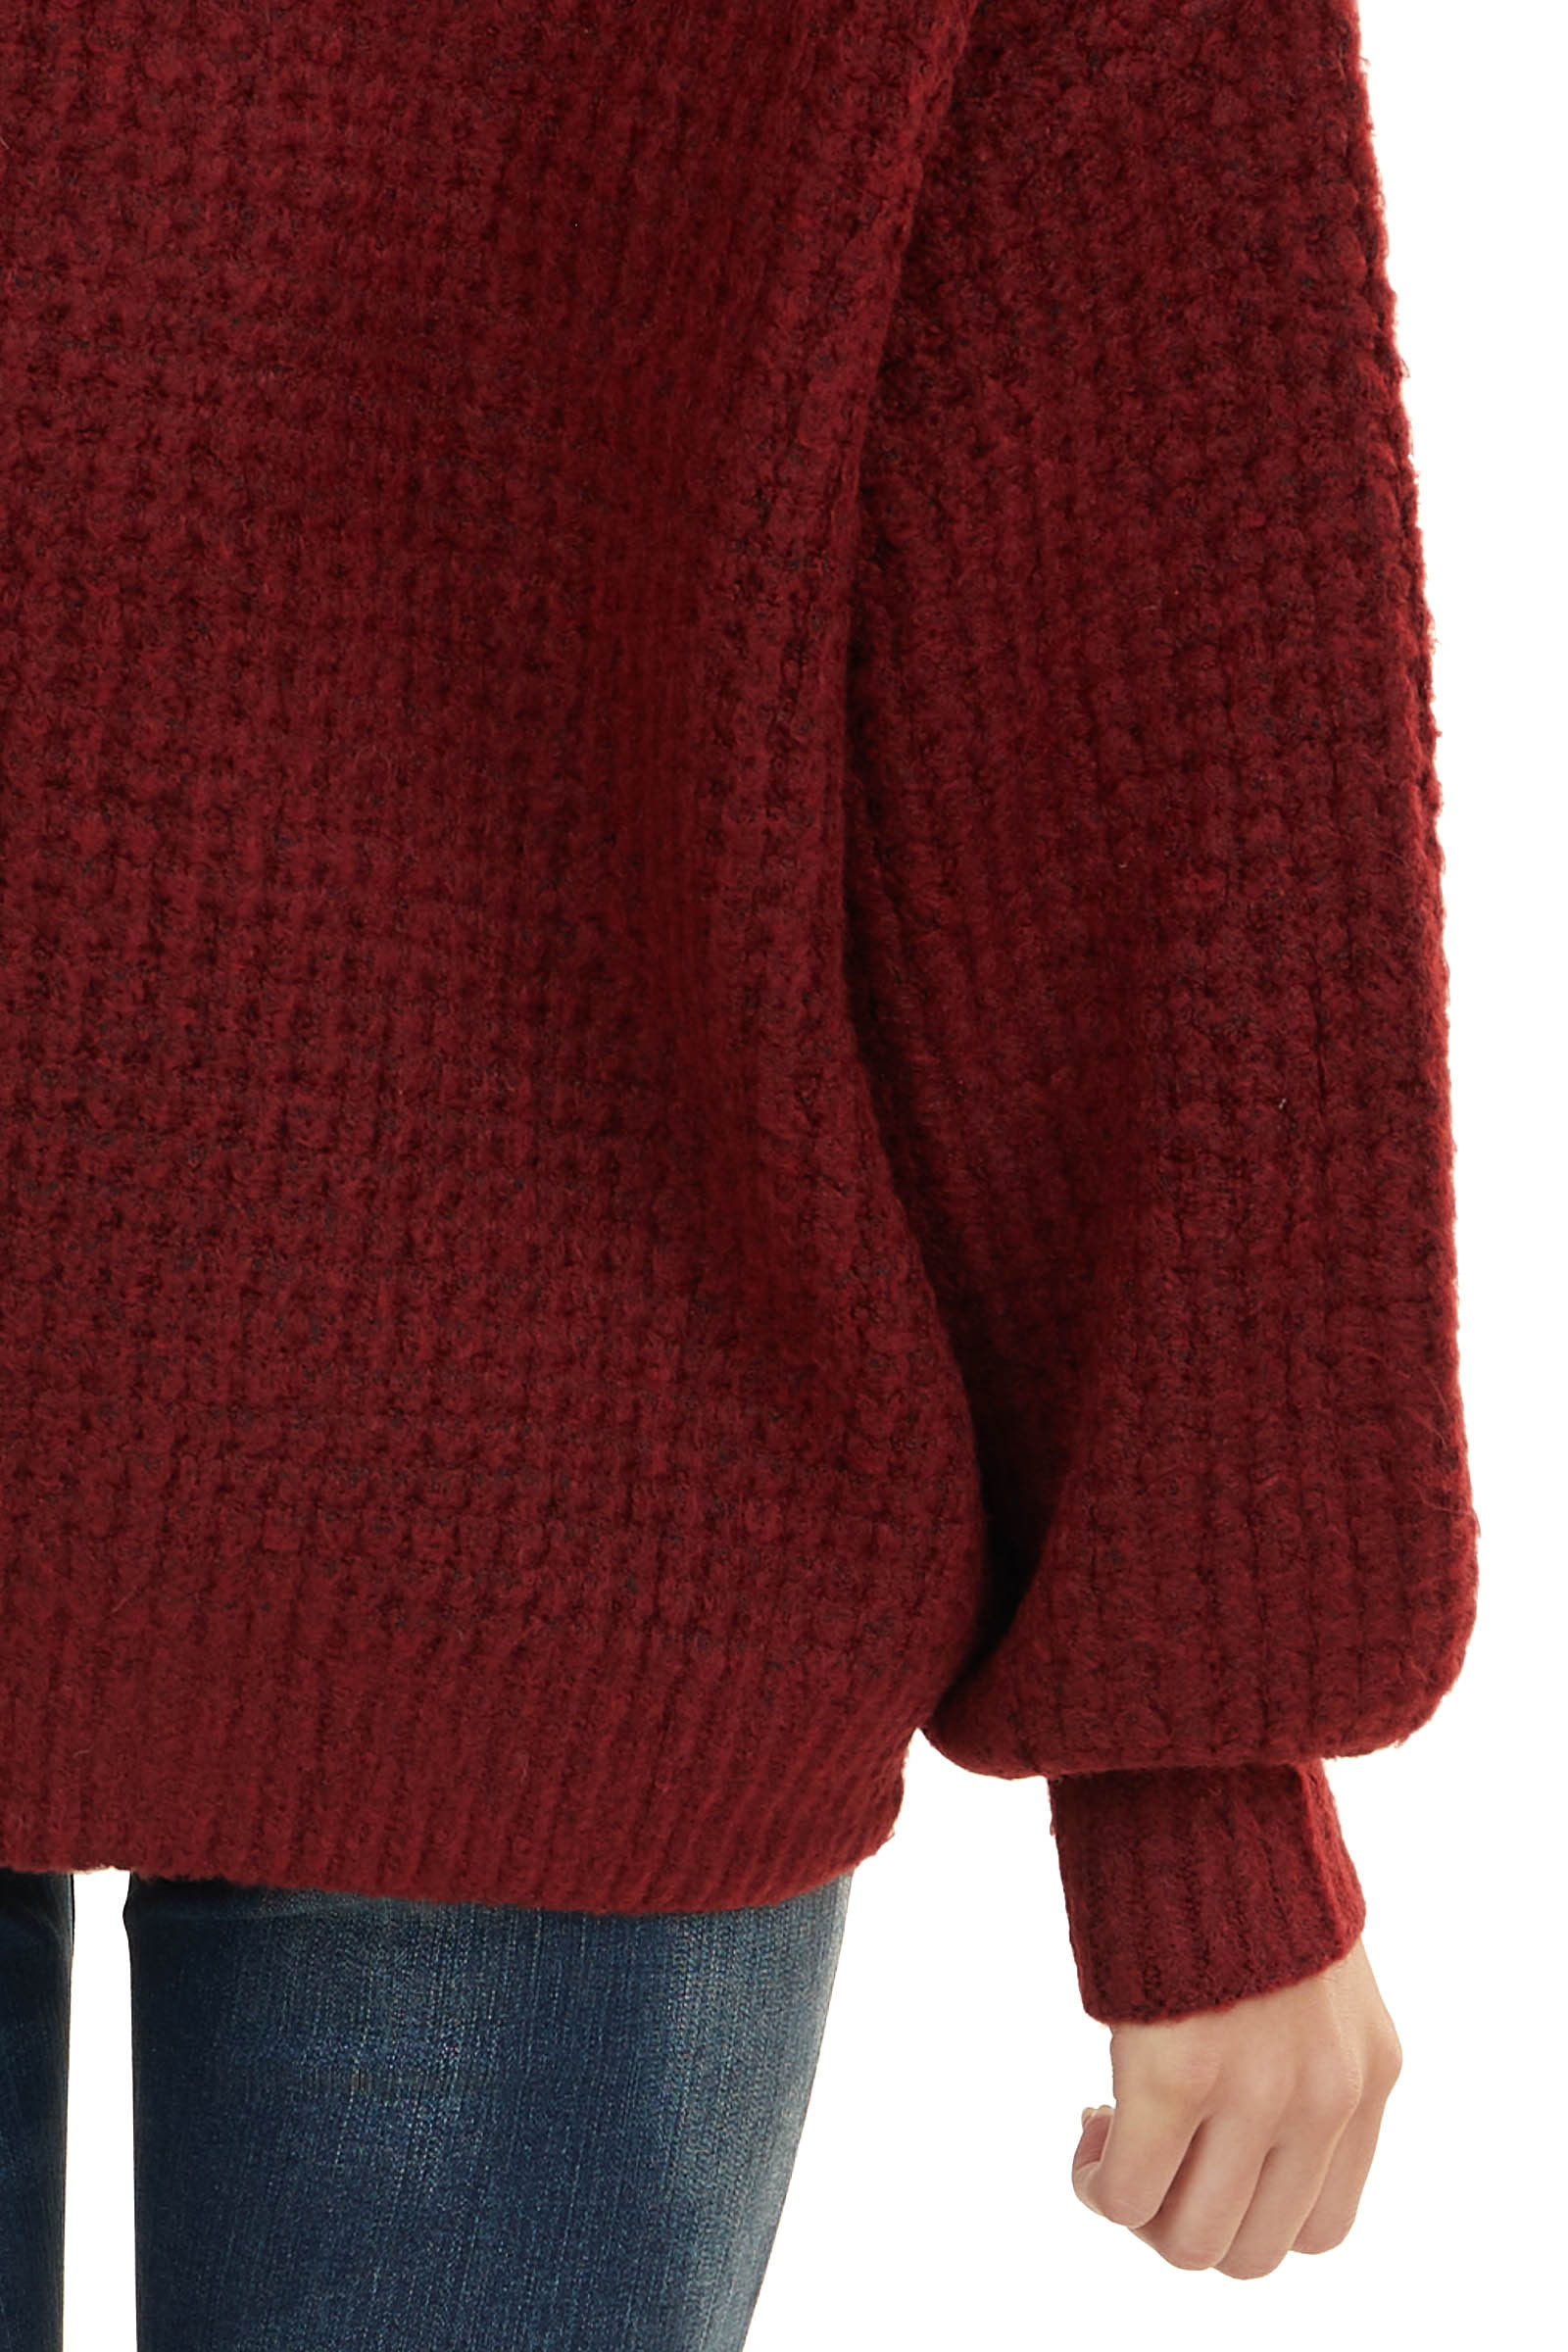 Maroon Textured Waffle Knit Sweater with V Neckline